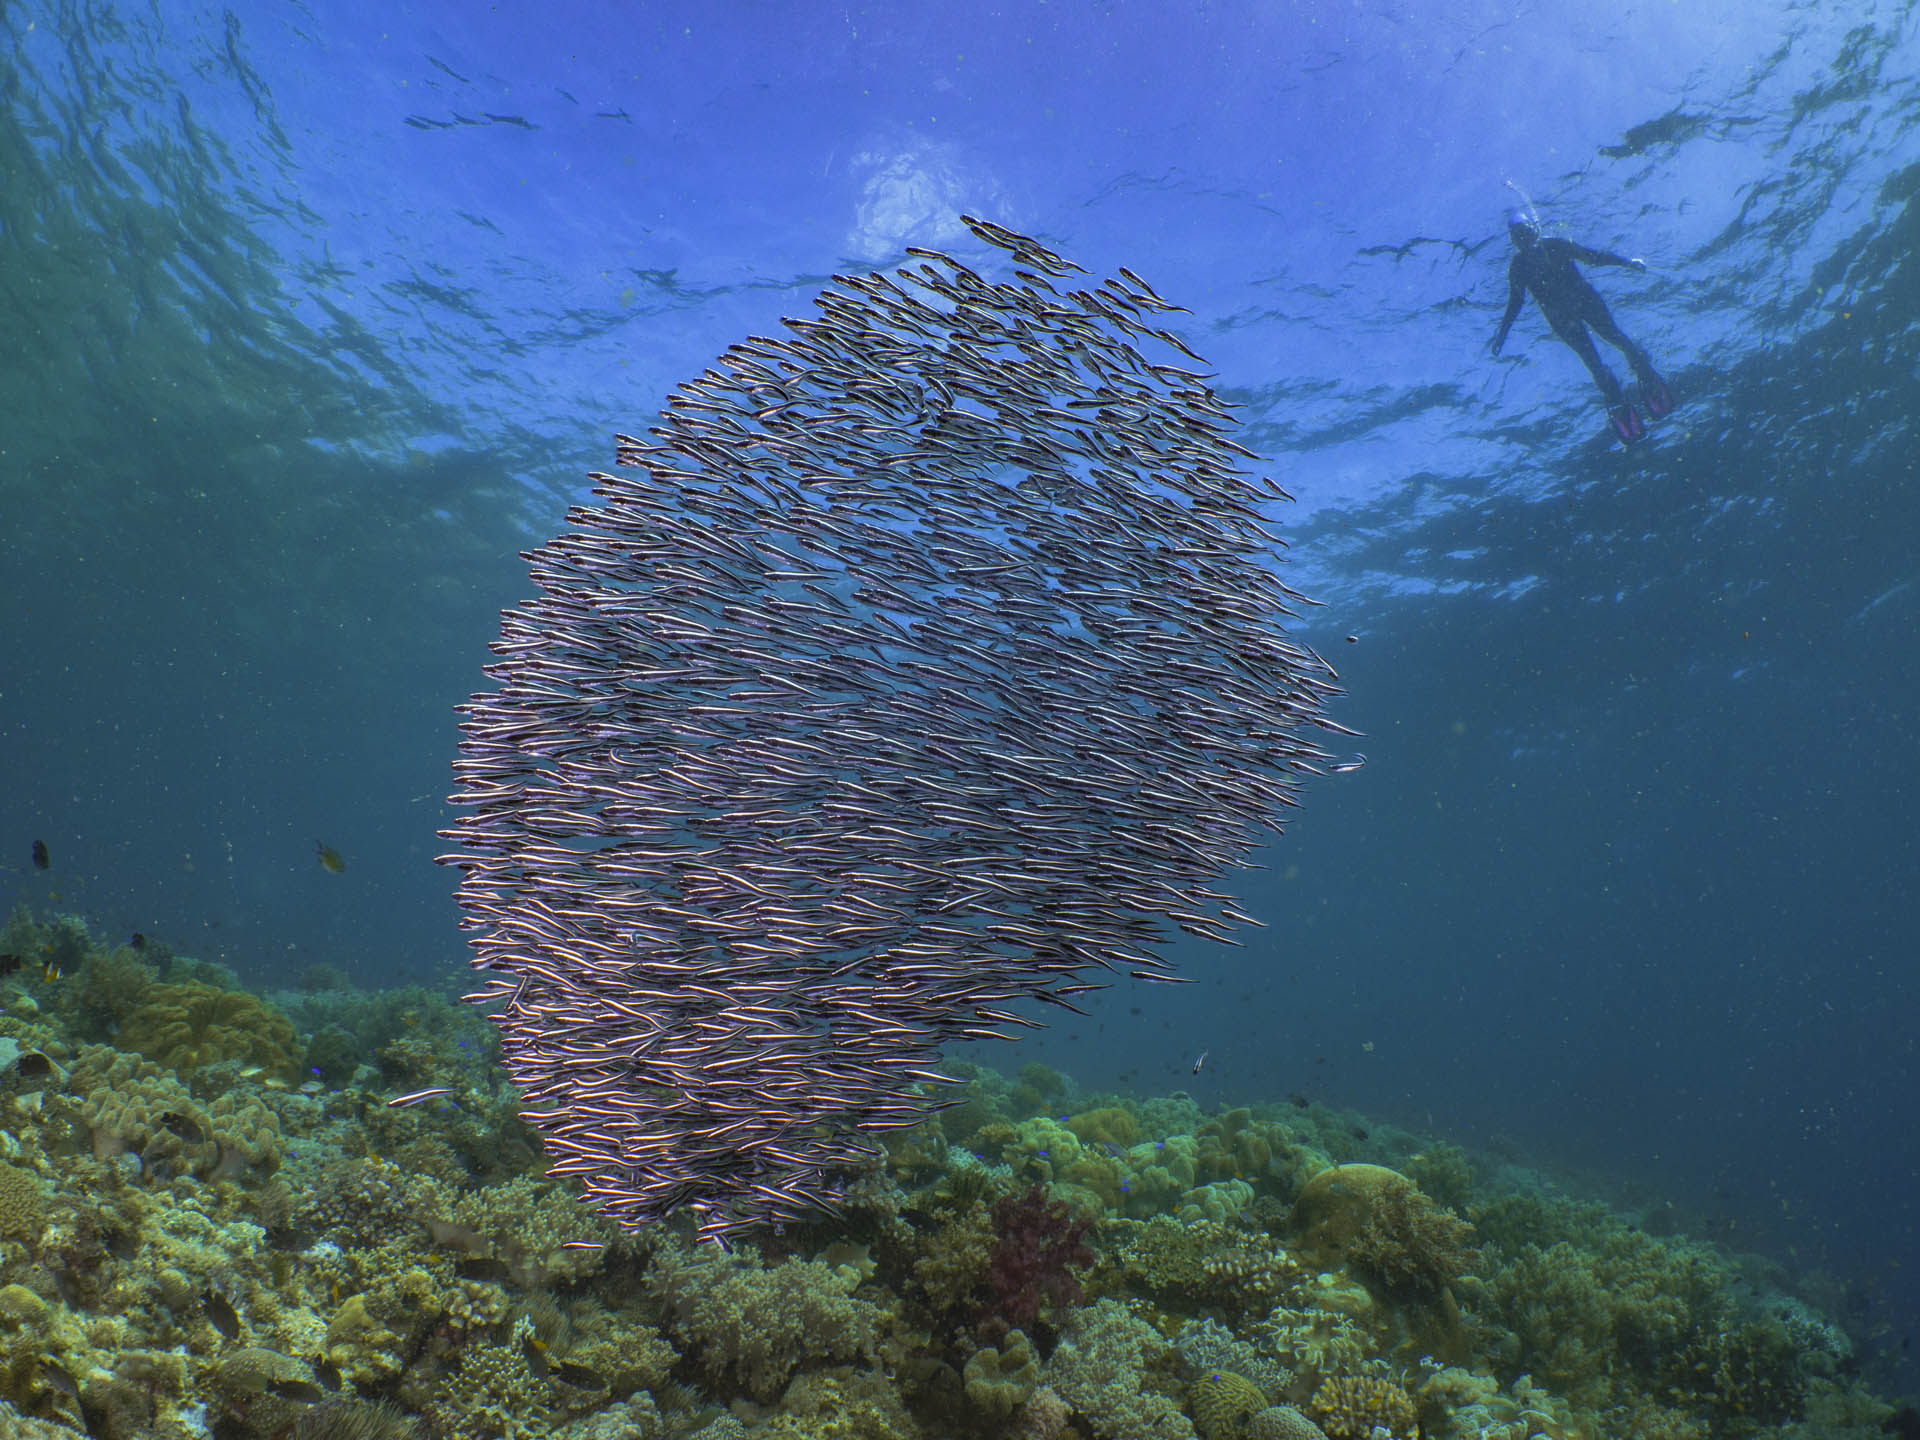 Snorkeler watching a school of striped cat fish